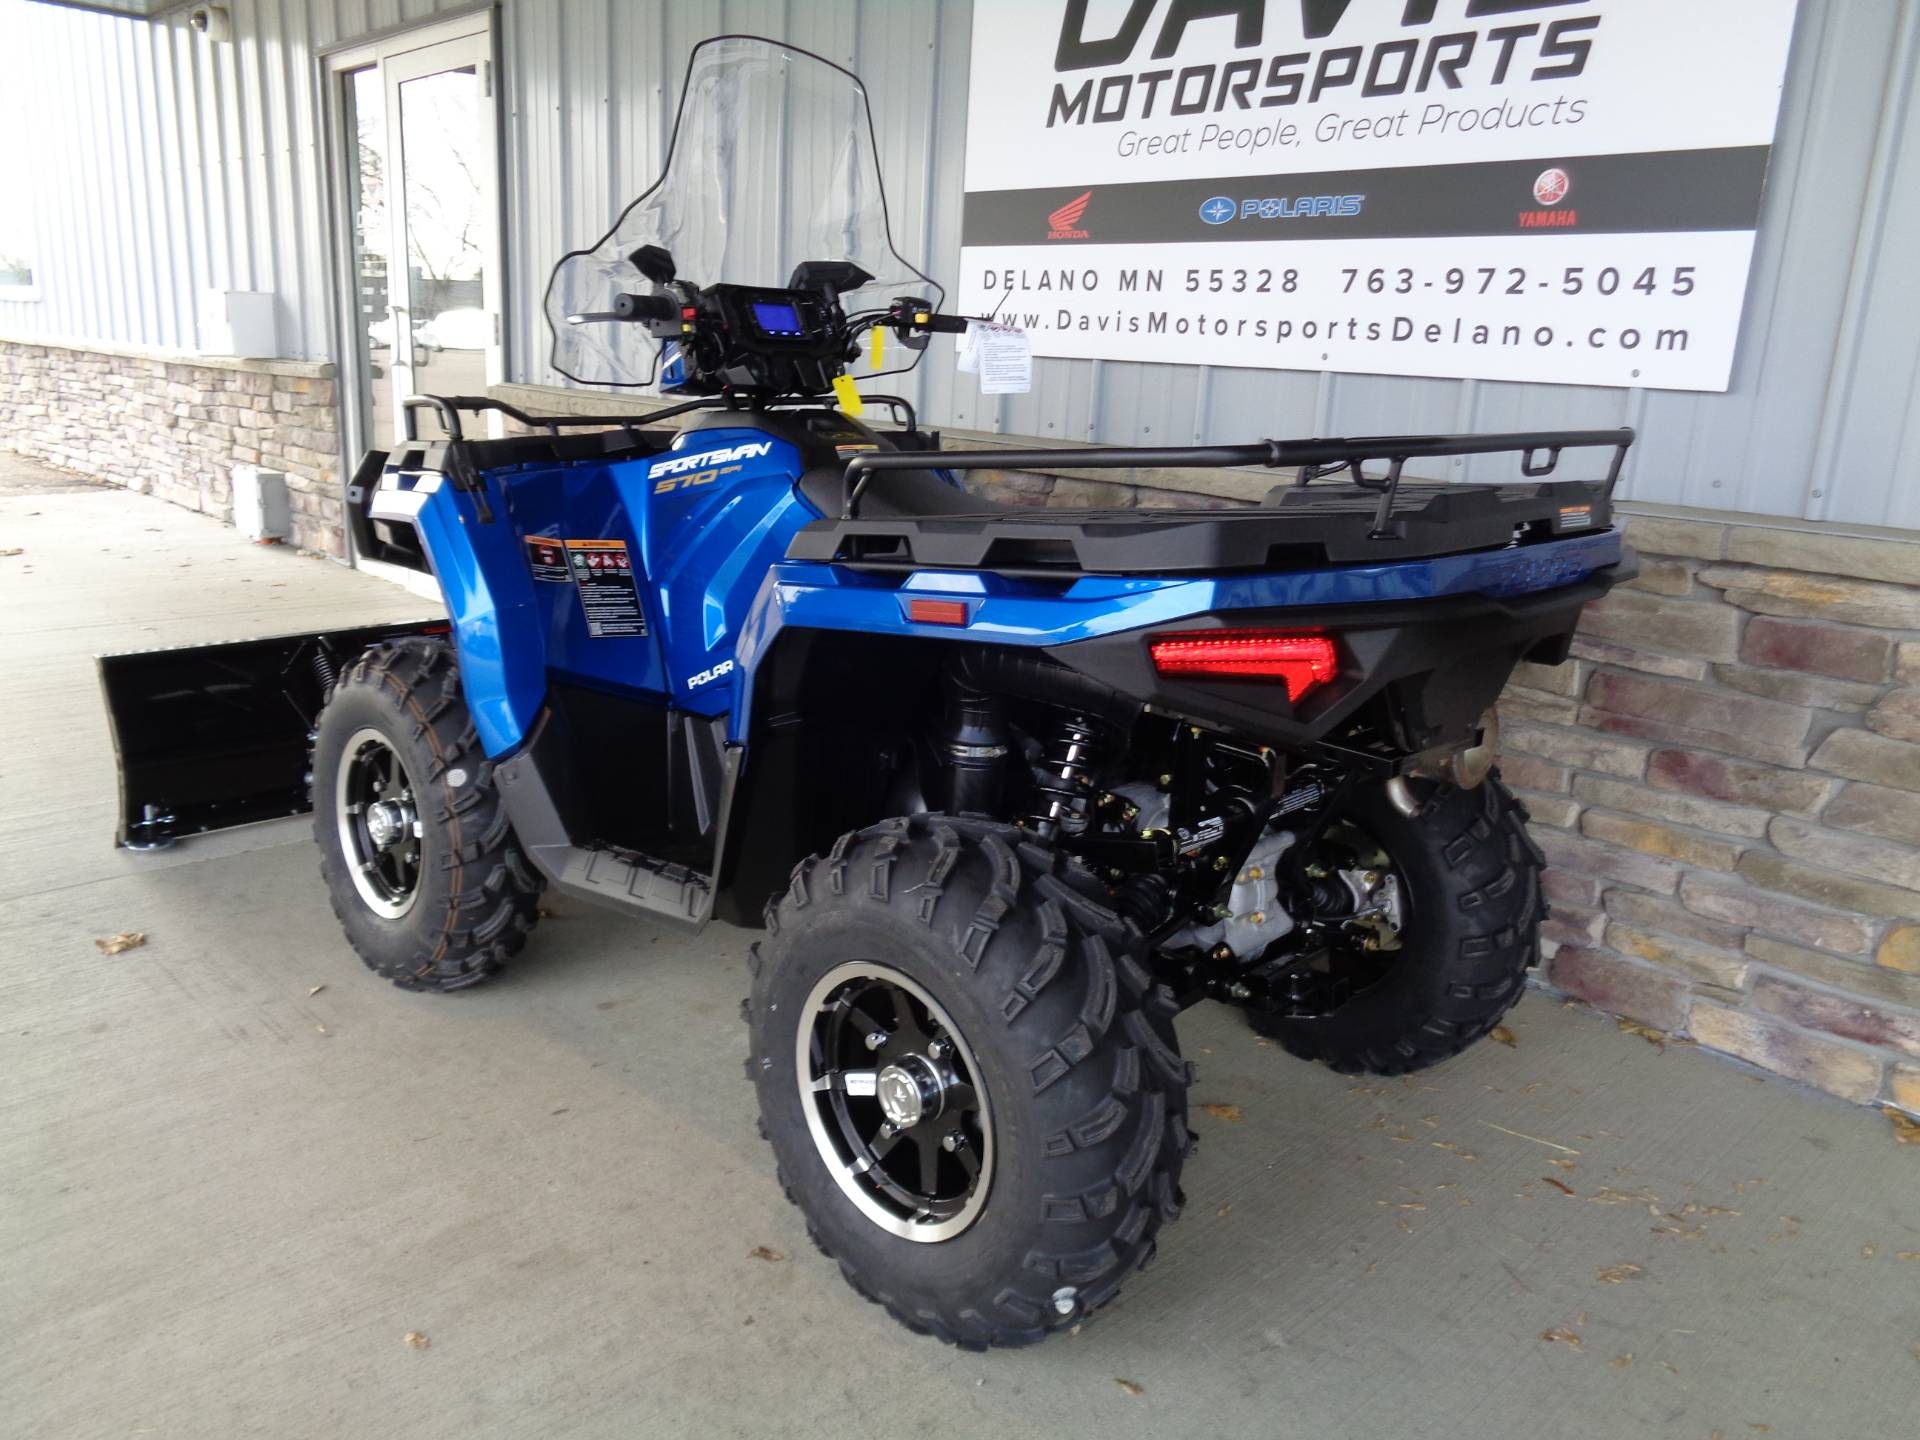 2021 Polaris Sportsman 570 Premium in Delano, Minnesota - Photo 6